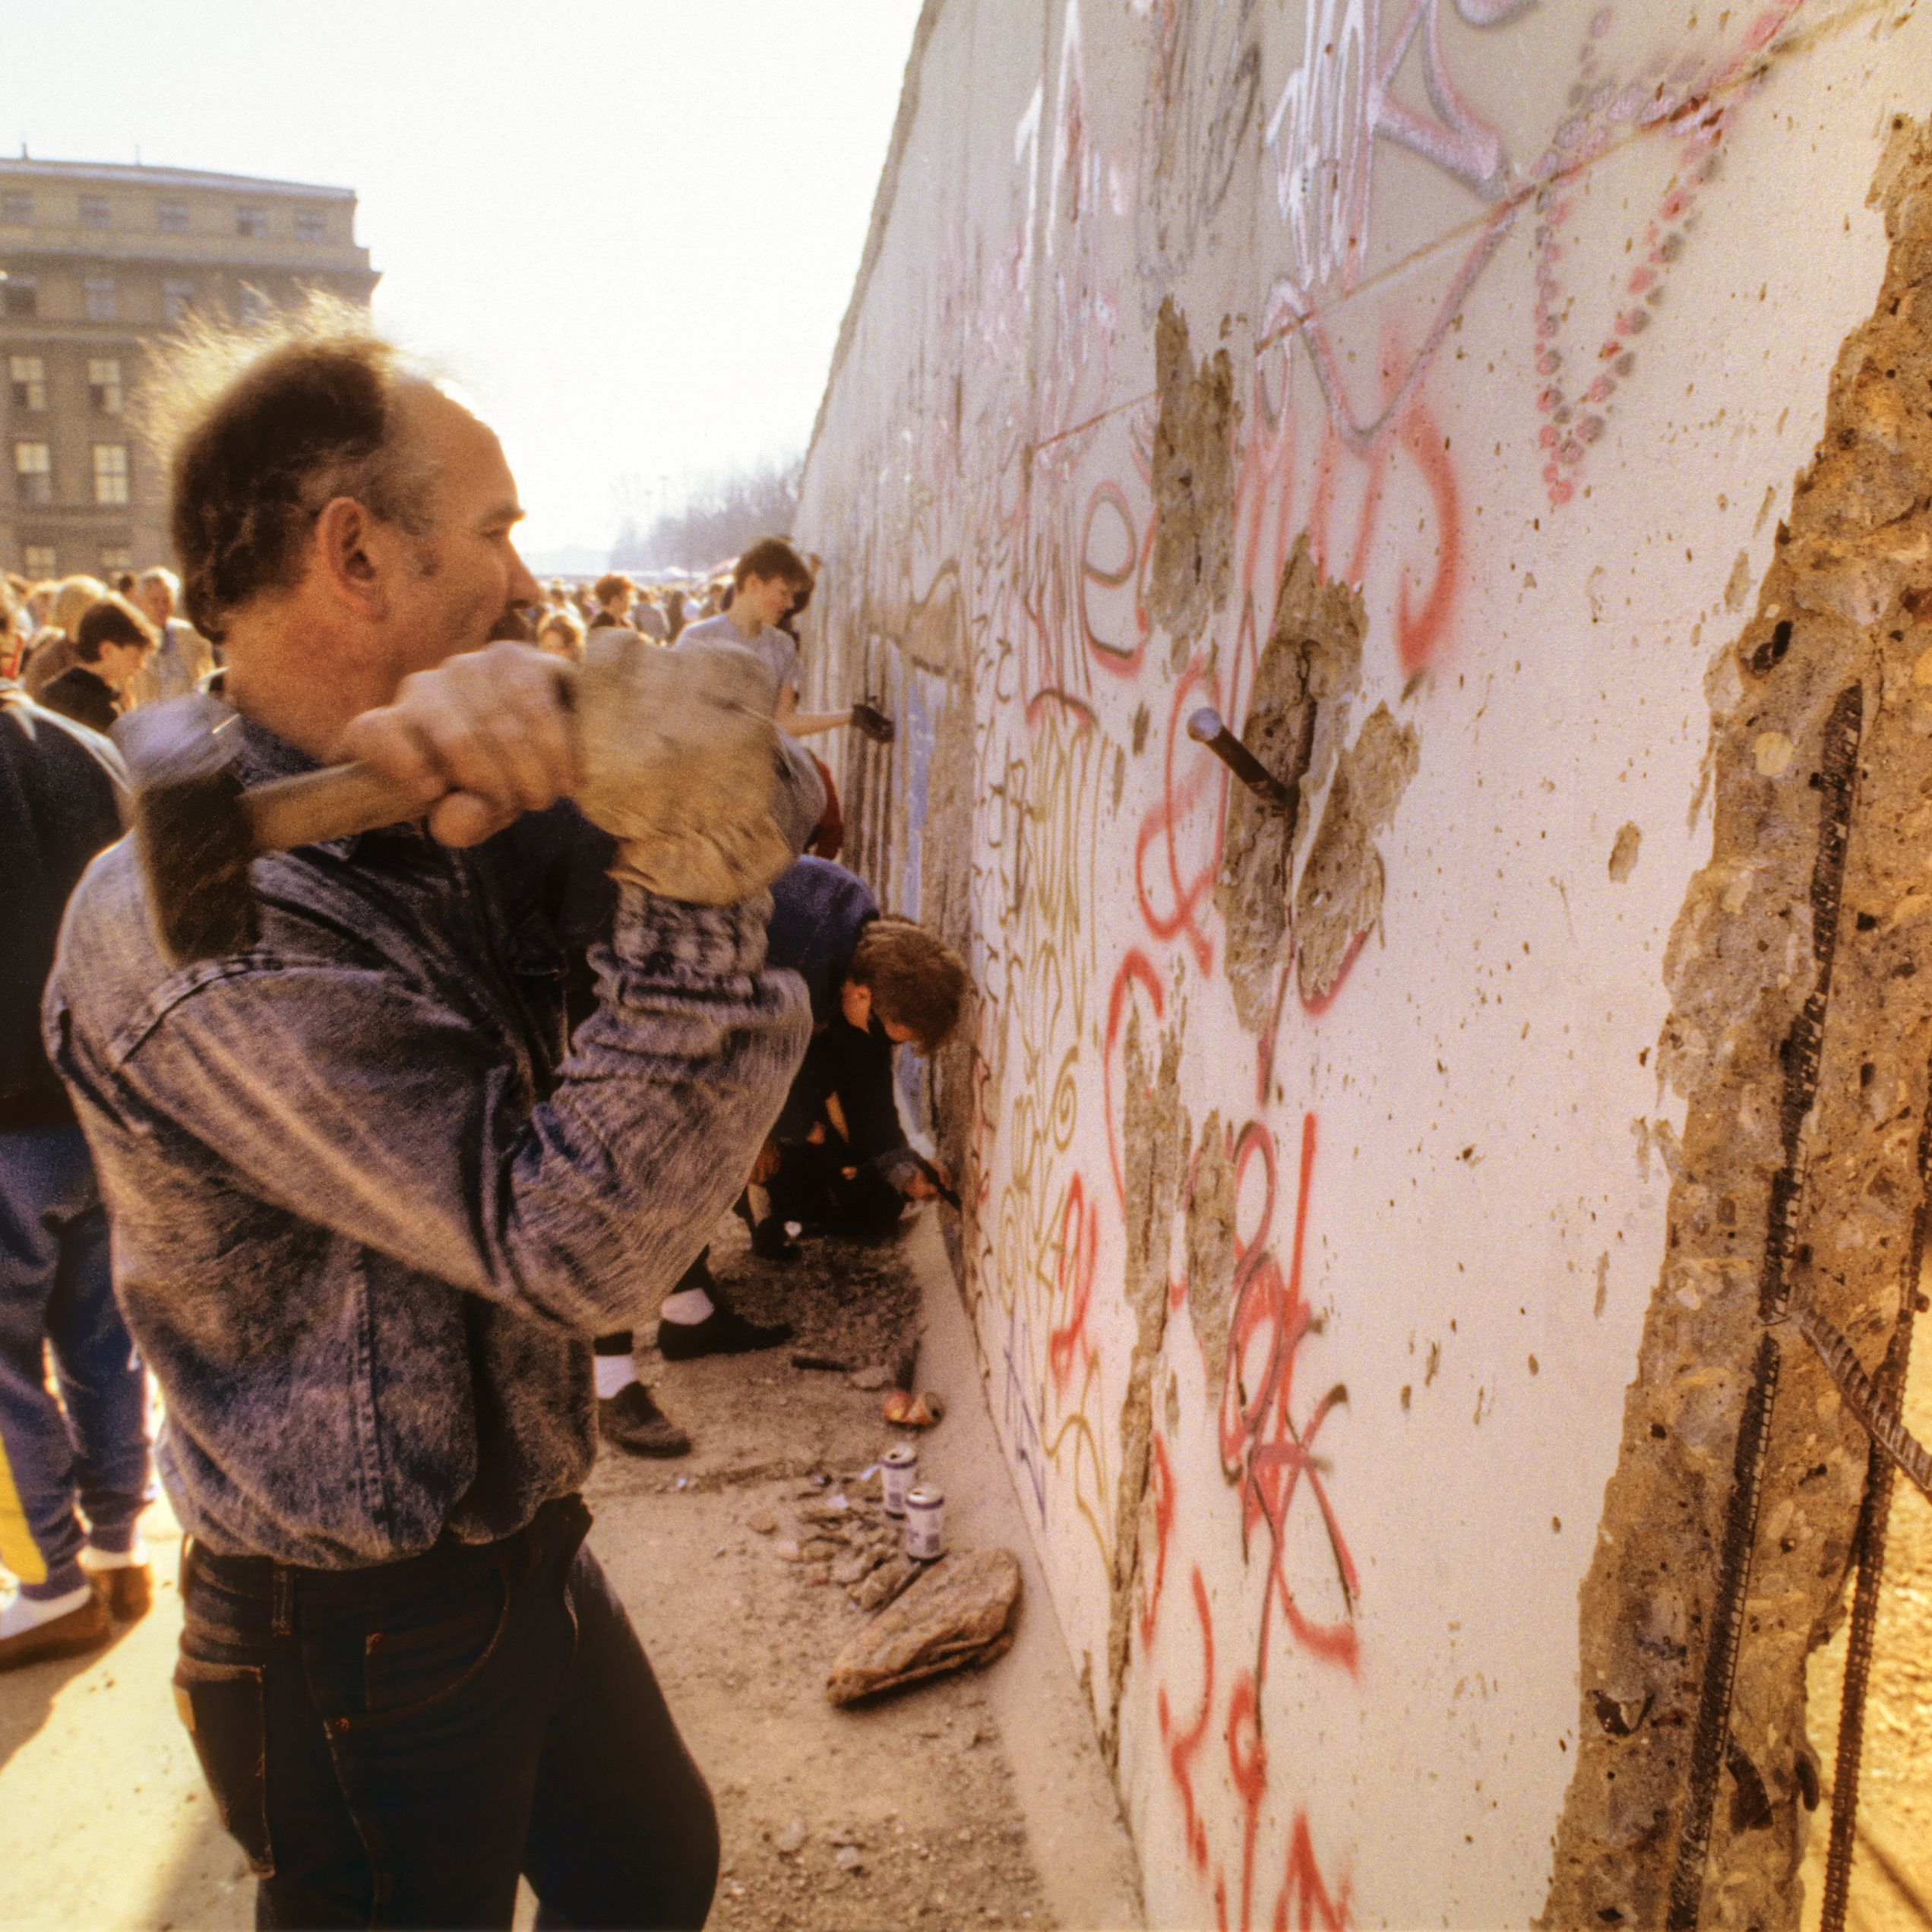 All About the Rise and Fall of the Berlin Wall